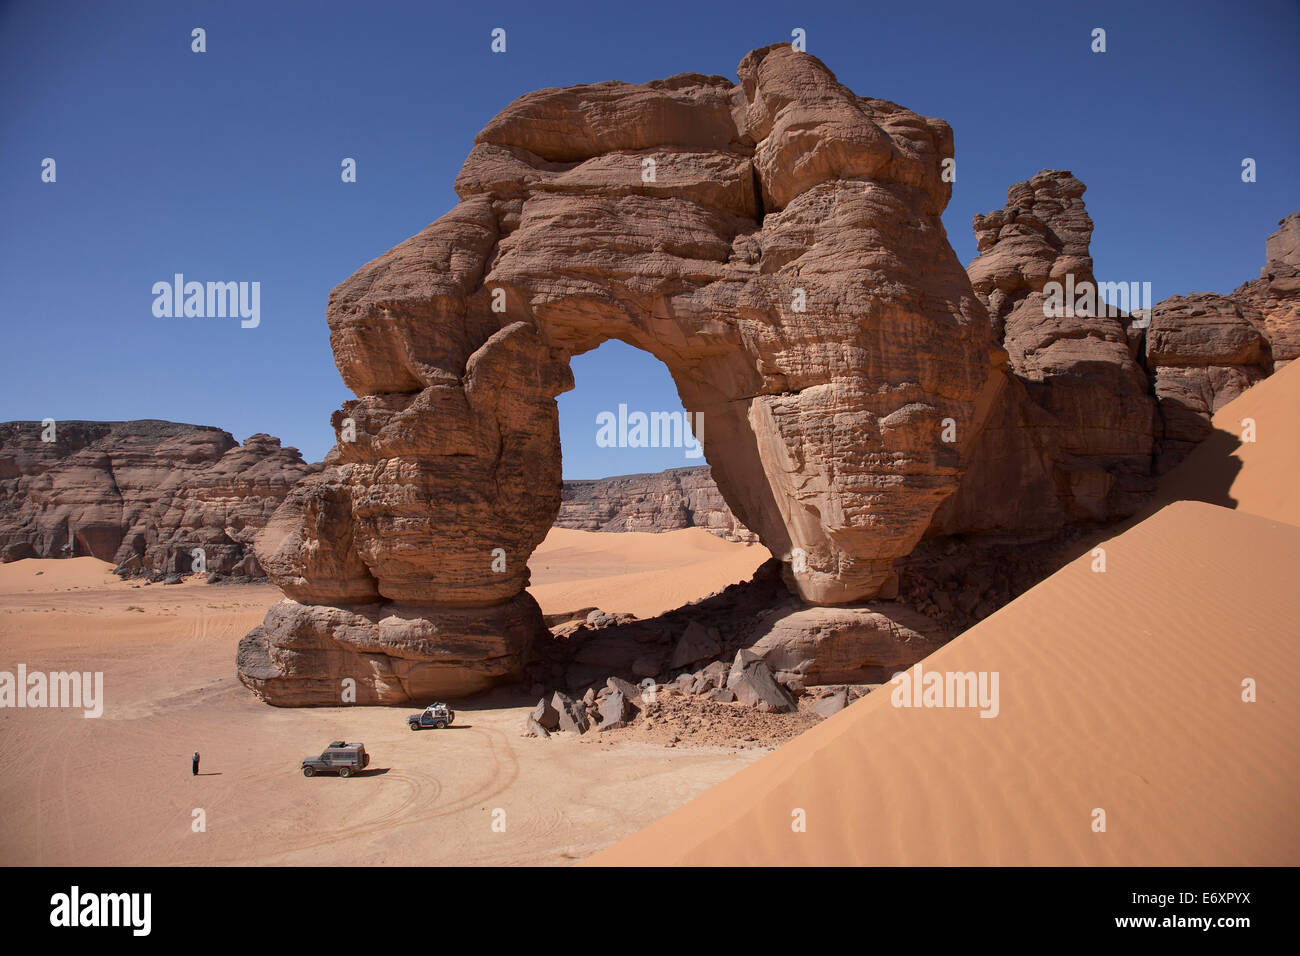 Off-road vehicles near a natural arch, Tadrart Acacus, Ghat District, Lybia - Stock Image